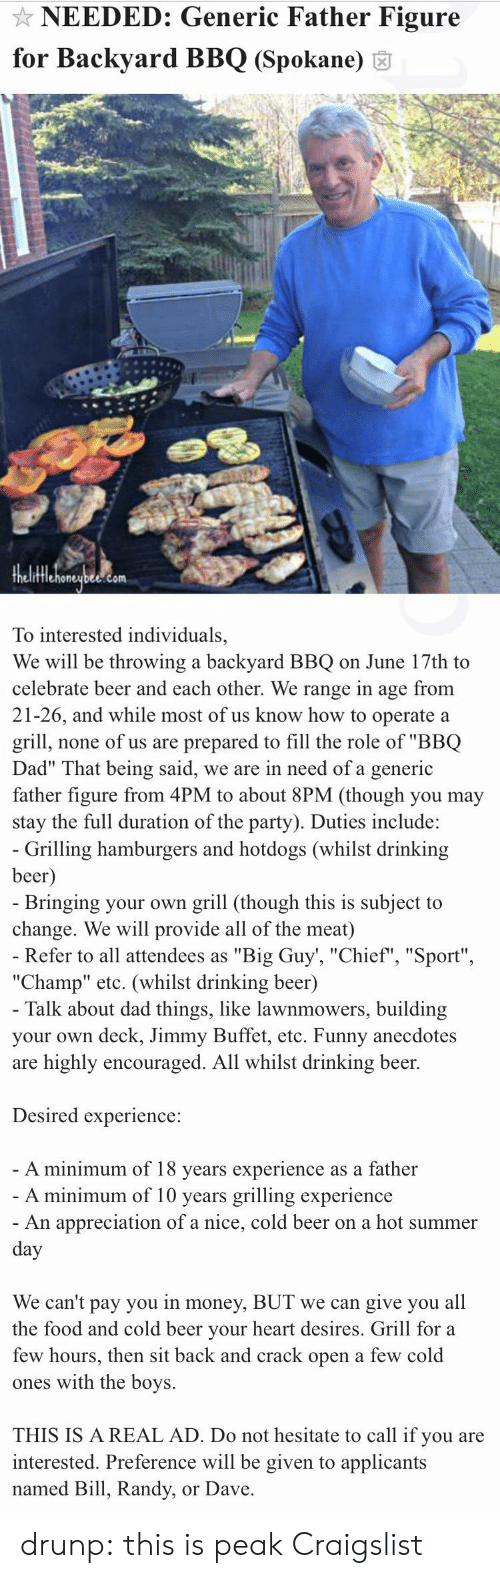 """Beer, Craigslist, and Dad: NEEDED: Generic Father Figure  for Backyard BBQ (Spokane) 6  fflehoneubee.com  To interested individuals,  We will be throwing a backyard BBQ on June 17th to  celebrate beer and each other. We range in age from  21-26, and while most of us know how to operate a  grill, none of us are prepared to fill the role of """"BBQ  Dad"""" That being said, we are in need of a generic  father figure from 4PM to about 8PM (though you may  stay the full duration of the party). Duties include:   Grilling hamburgers and hotdogs (whilst drinking  beer  Bringing your own grill (though this is subject to  change. We will provide all of the meat)  Refer to all attendees as """"Big Guy', """"Chief"""", """"Sport""""  """"Champ"""" etc. (whilst drinking beer)  Talk about dad things, like lawnmowers, building  your own deck, Jimmy Buffet, etc. Funny anecdotes  are highly encouraged. All whilst drinking beer.  Desired experience:  A minimum of 18 vears experience as a father  A minimum of 10 years grilling experience  An appreciation of a nice, cold beer on a hot summer  We can't pay you in money, BUT we can give you all  the food and cold beer vour heart desires. Grill for a  few hours, then sit back and crack open a few cold  ones with the boys.  THIS IS A REAL AD. Do not hesitate to call if you are  interested. Preference will be given to applicants  named Bill, Randy, or Dave drunp: this is peak Craigslist"""